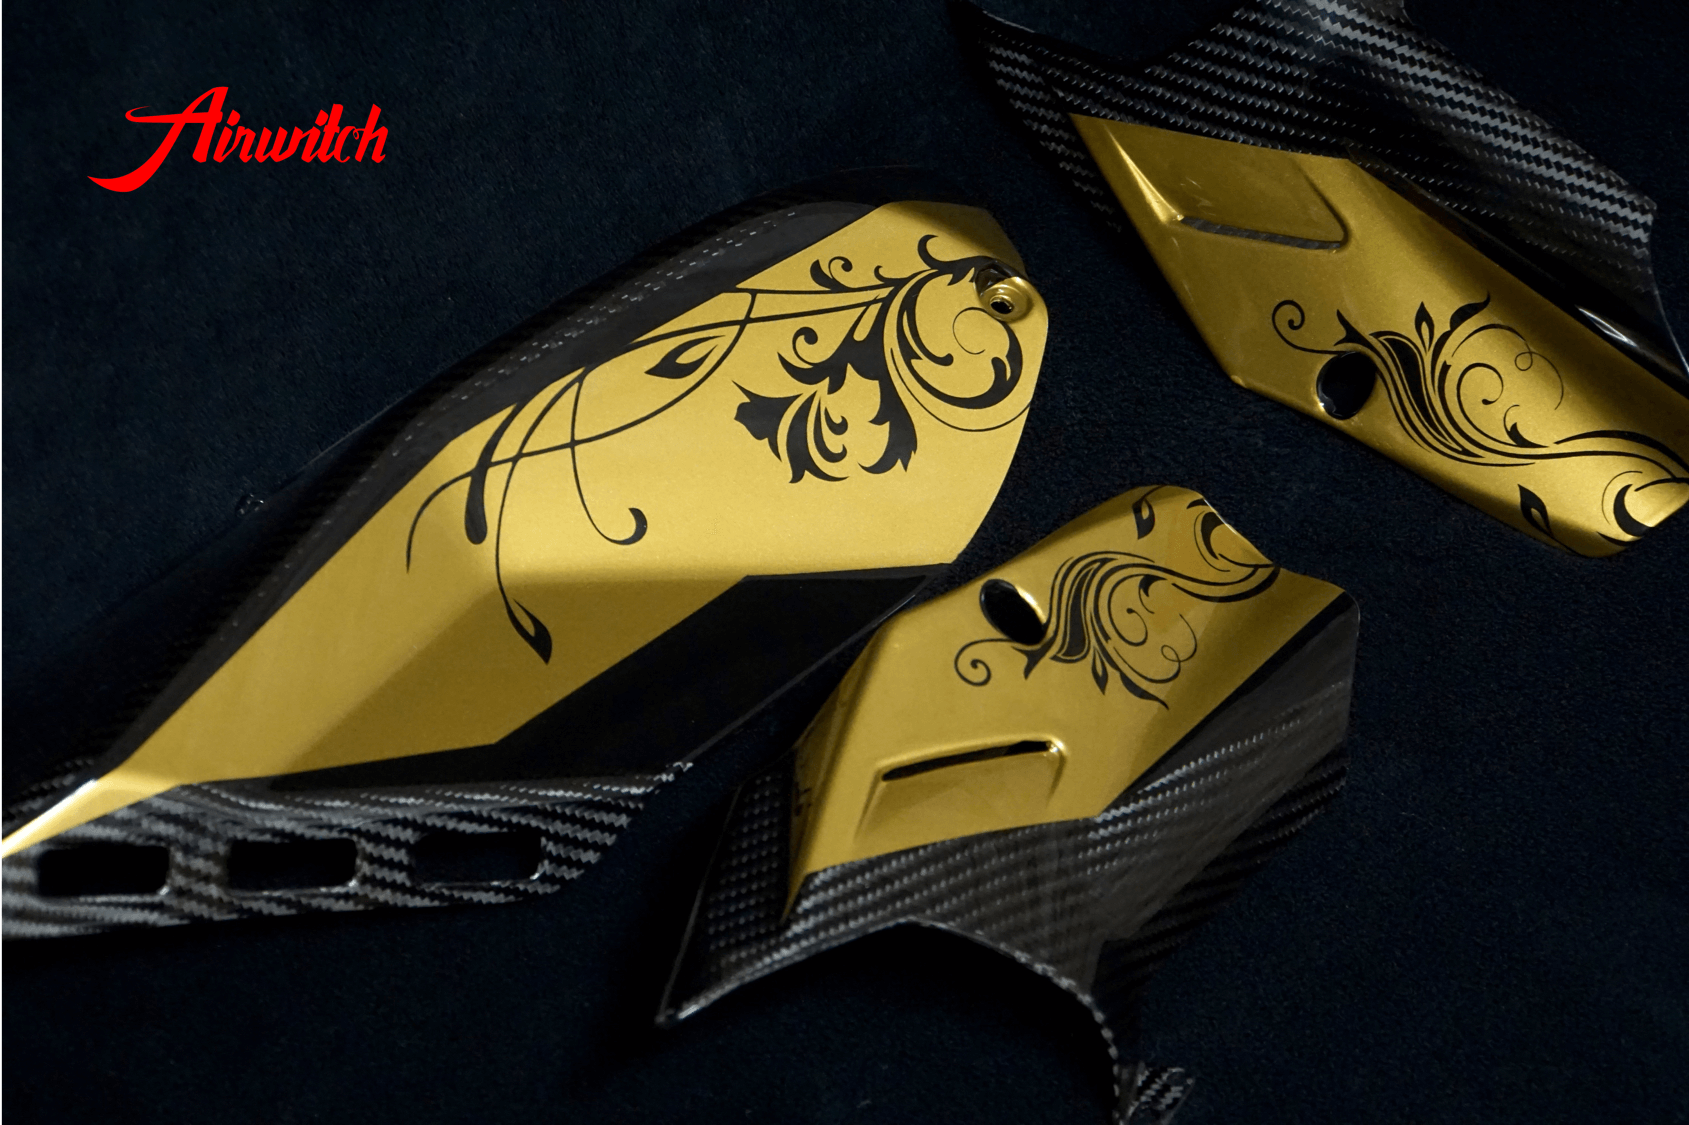 Custom Paint Ducati Panigale V4 Carbon Parts Lackierung Gold & Black La catrina